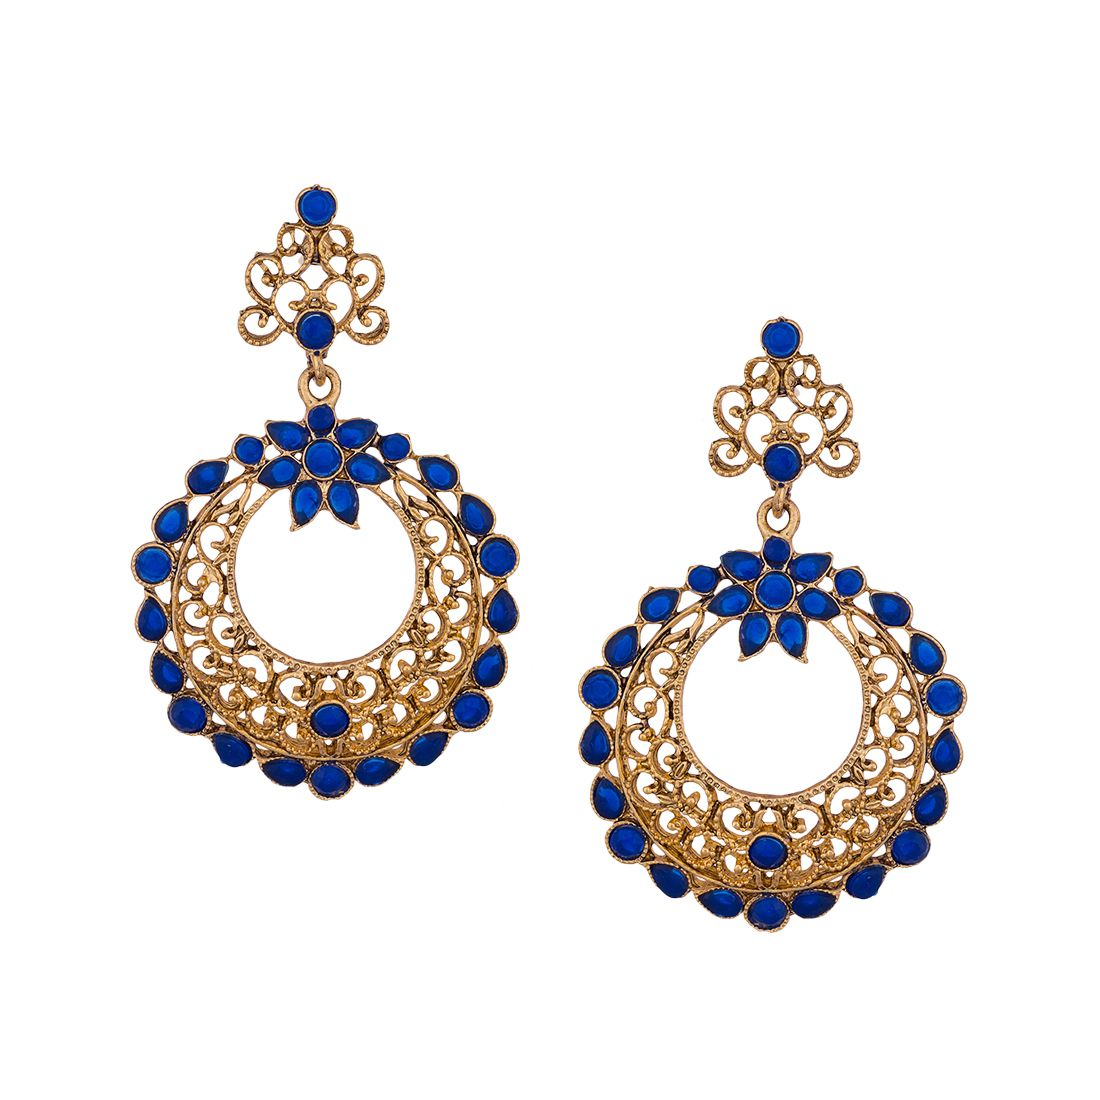 Jewelz Ethnic Gold Plated Hanging Earrings With Royal Blue Stones for Women